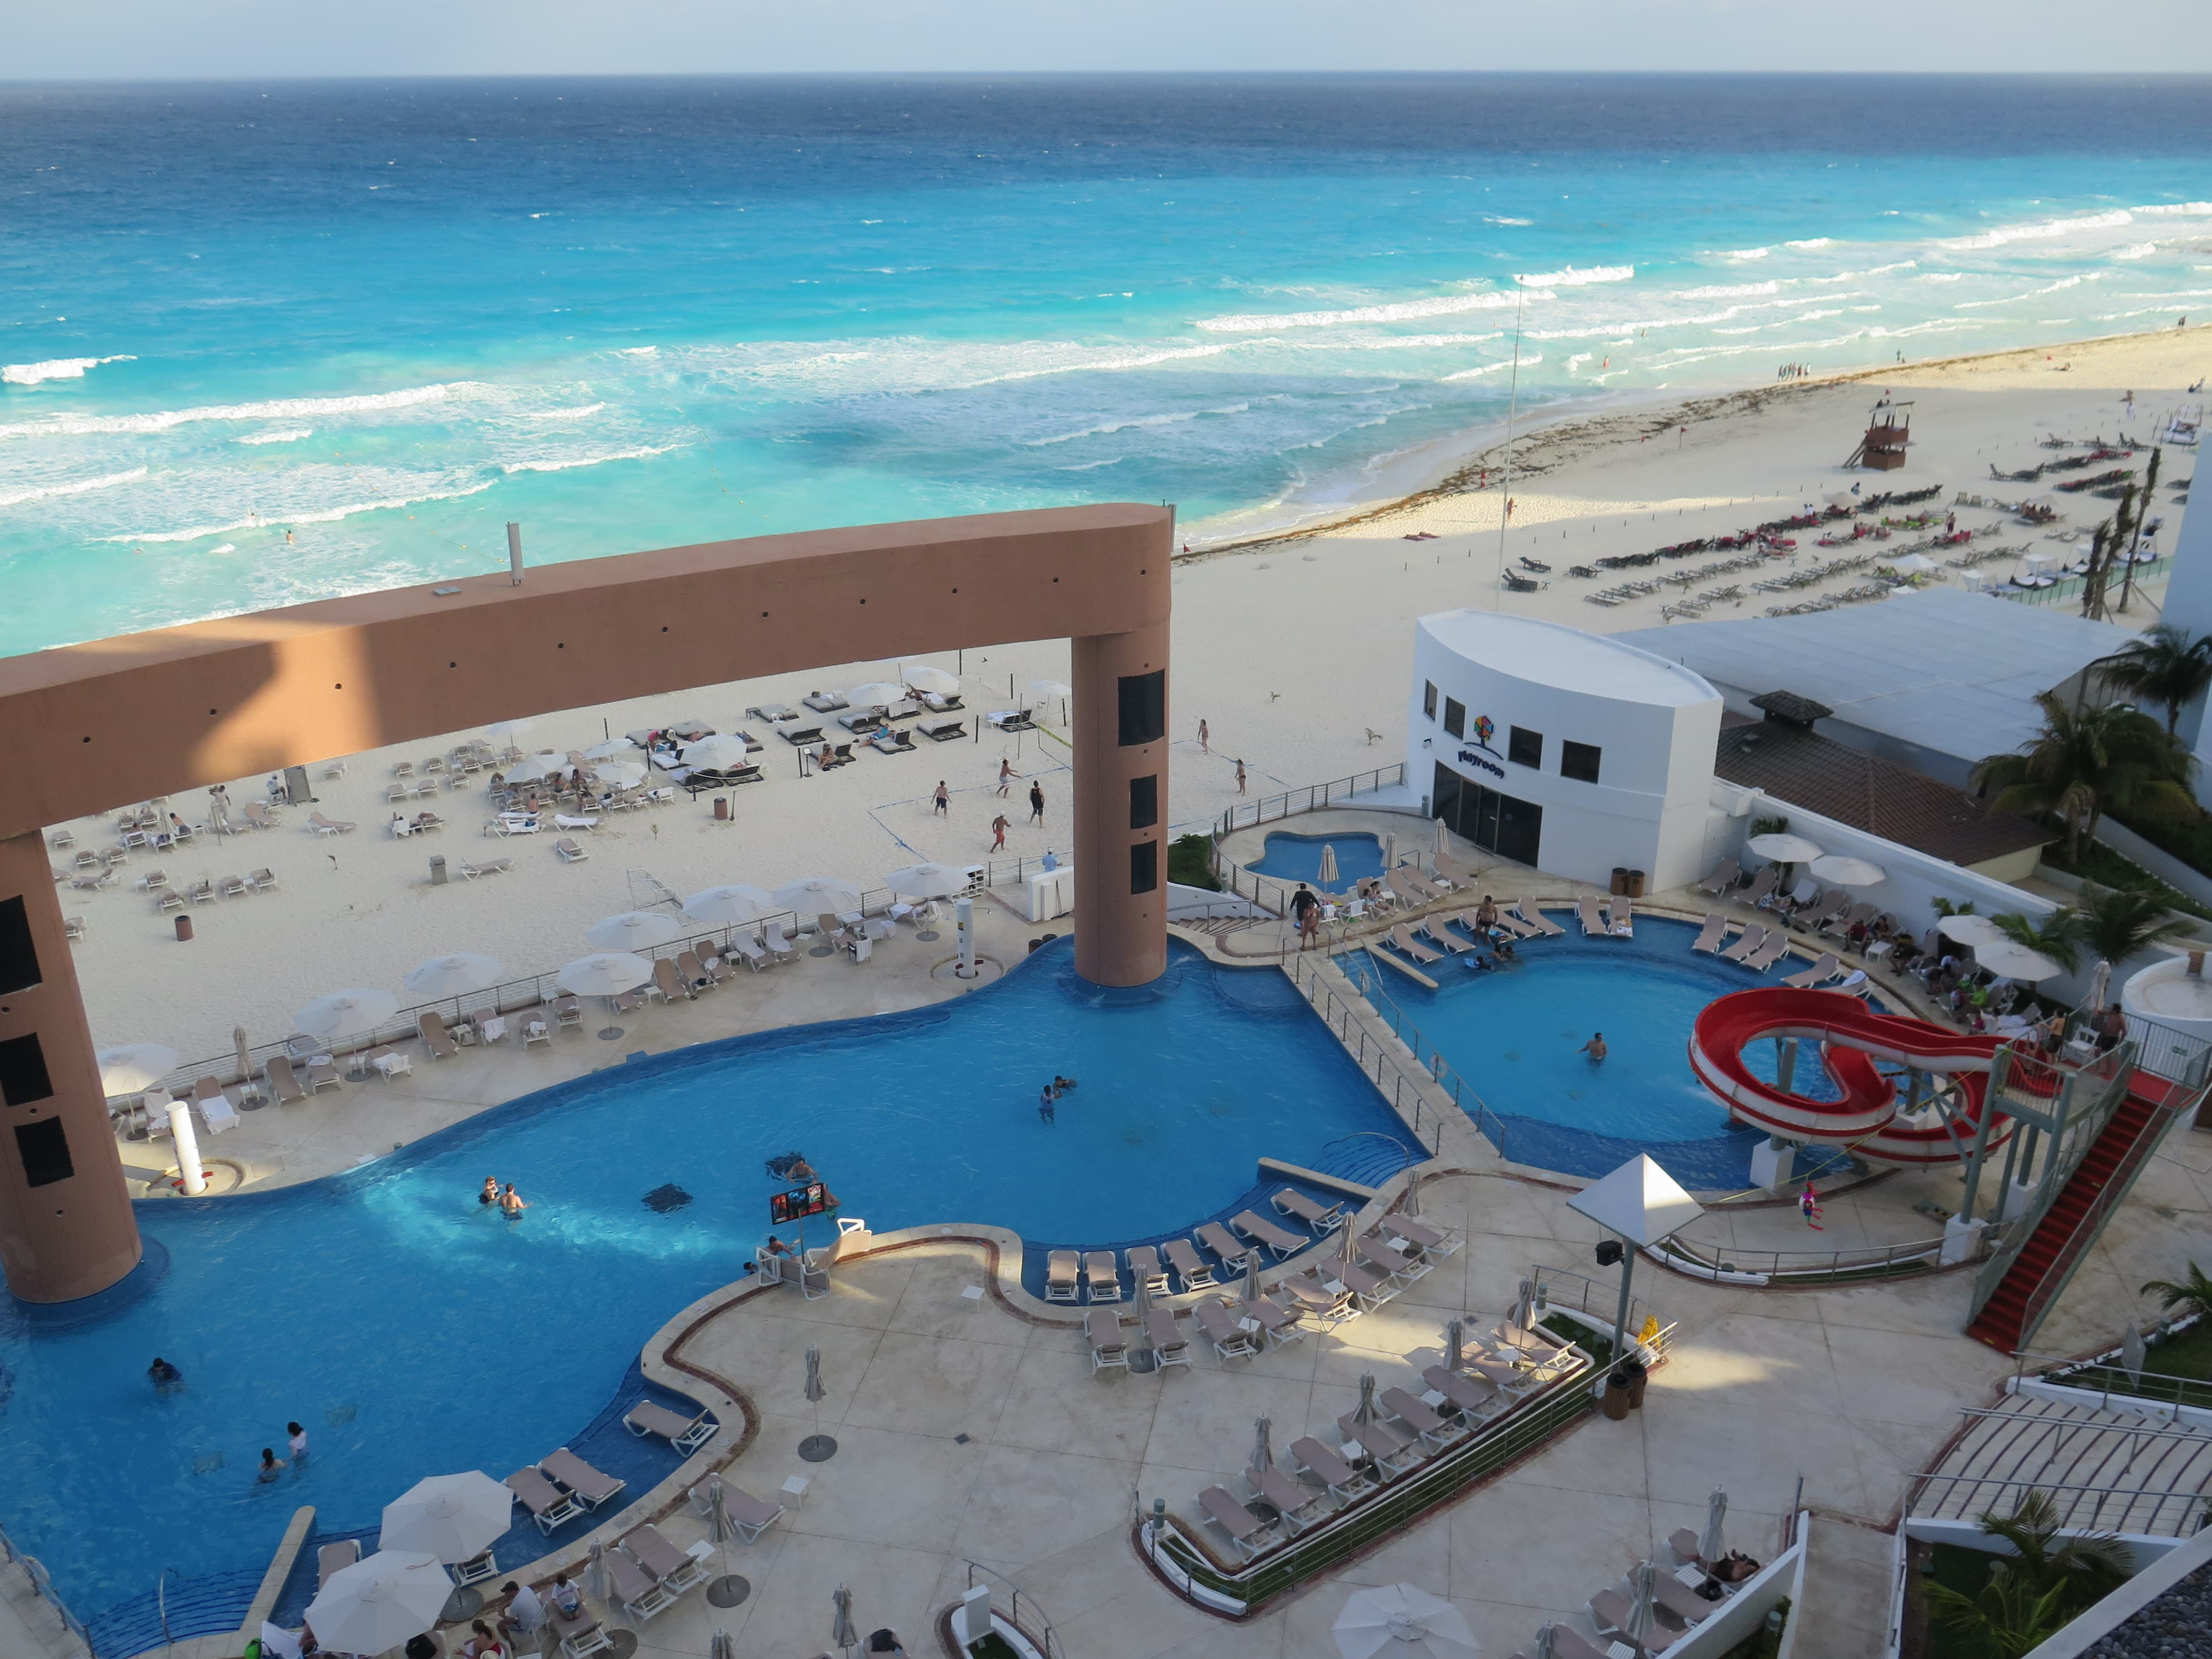 Cancun Vs Cabo A Look At Two Great Mexico Destinations Expediaca - Where is cancun